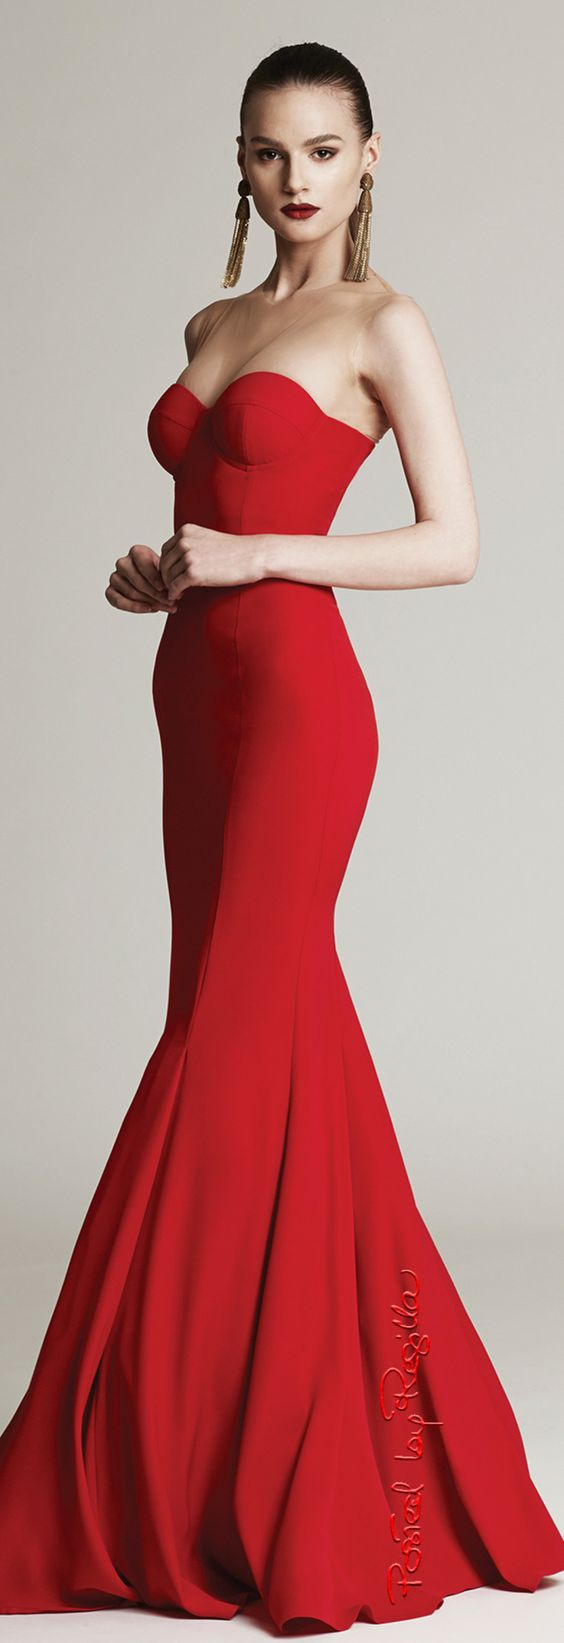 Red Evening Dress | You can find this and many other looks at => http://feedproxy.google.com/~r/amazingoutfits/~3/hiRrU7yAkDg/AmazingOutfits.page: